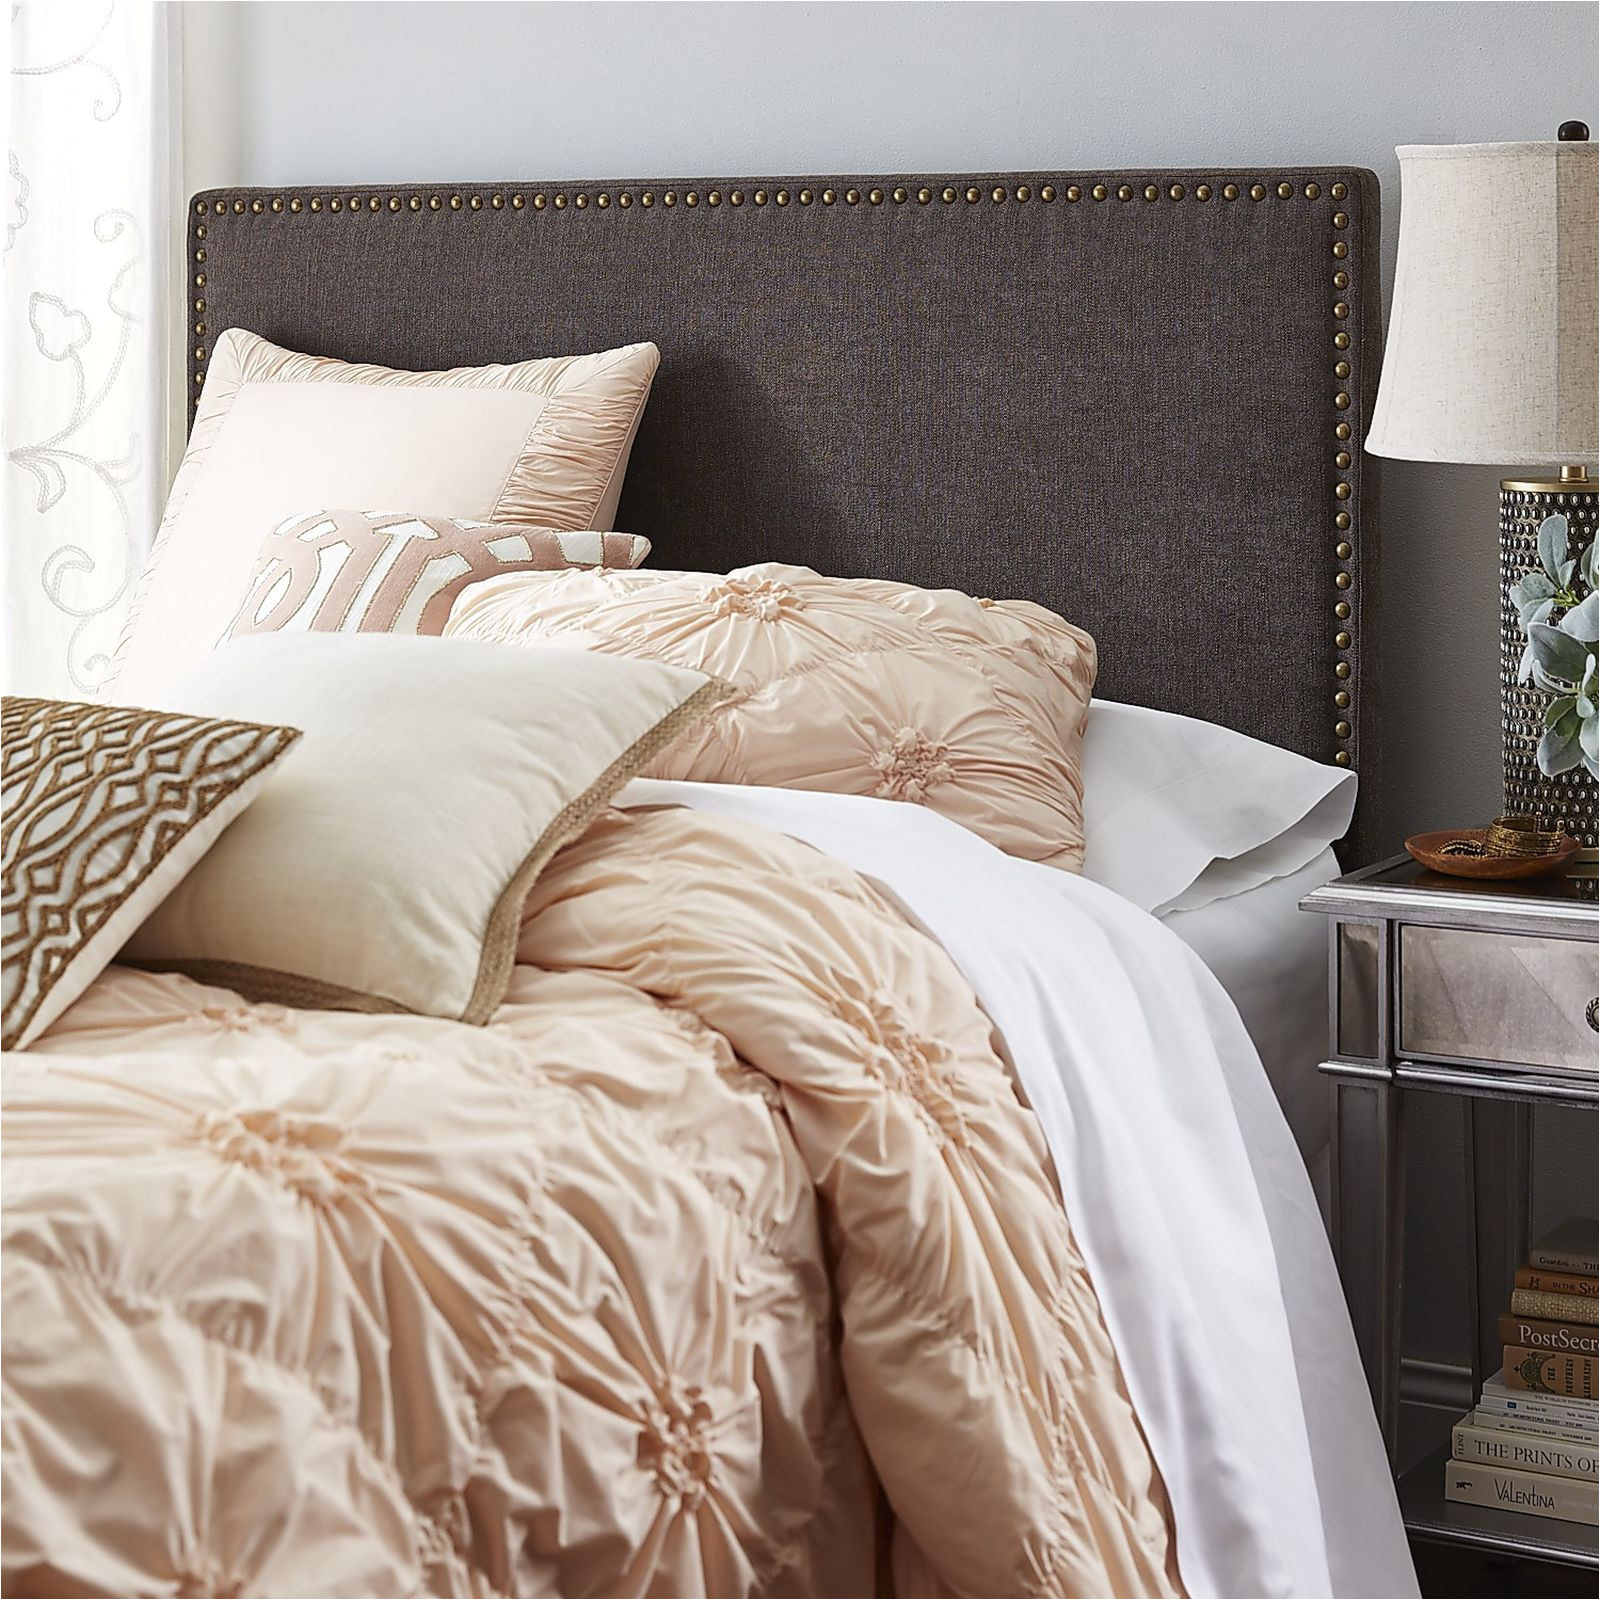 upholstered headboards are all the rage none more so than clarke on trend yet